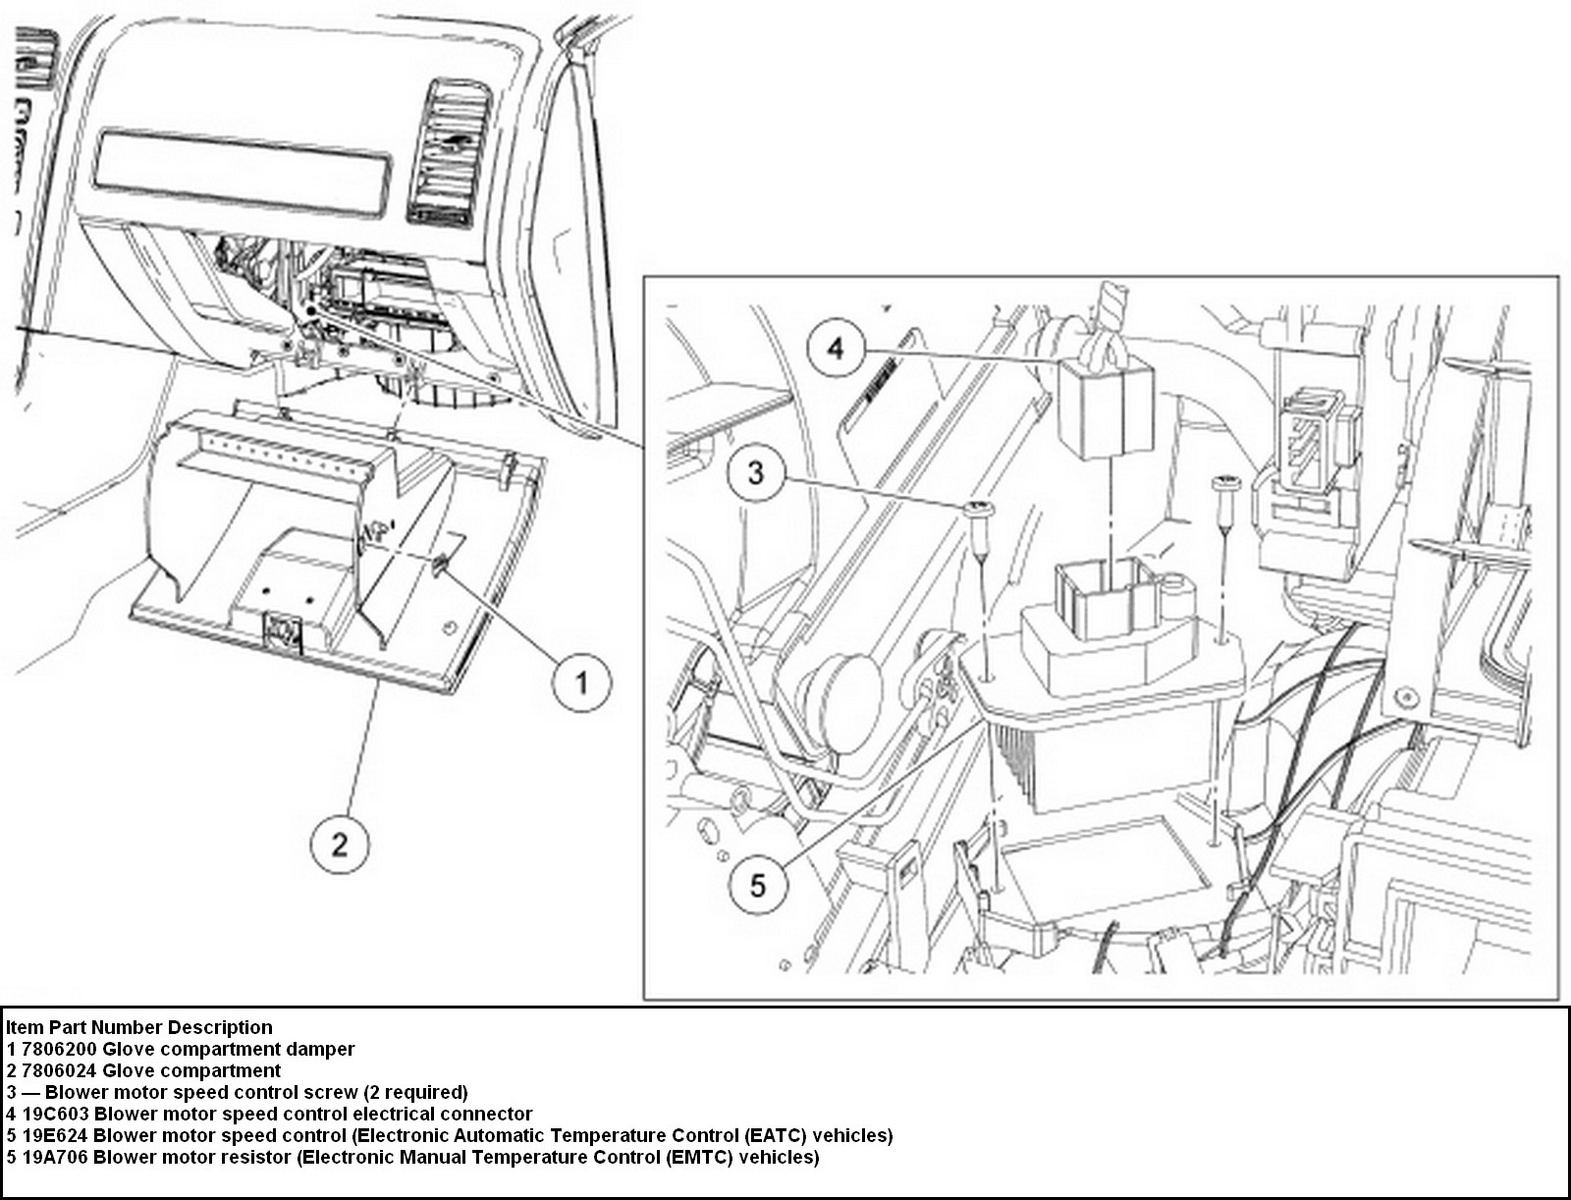 T9065875 Need belt diagram 1995 dodge caravan 3 3 also RepairGuideContent also Cigarette Lighter Auxillary Power Outlet Graphic 2010 Buick Lacrosse Fuse together with Discussion T24957 ds624347 further 2003 Chevy Tracker Engine Diagram. on wiring diagram of 2006 buick lacrosse